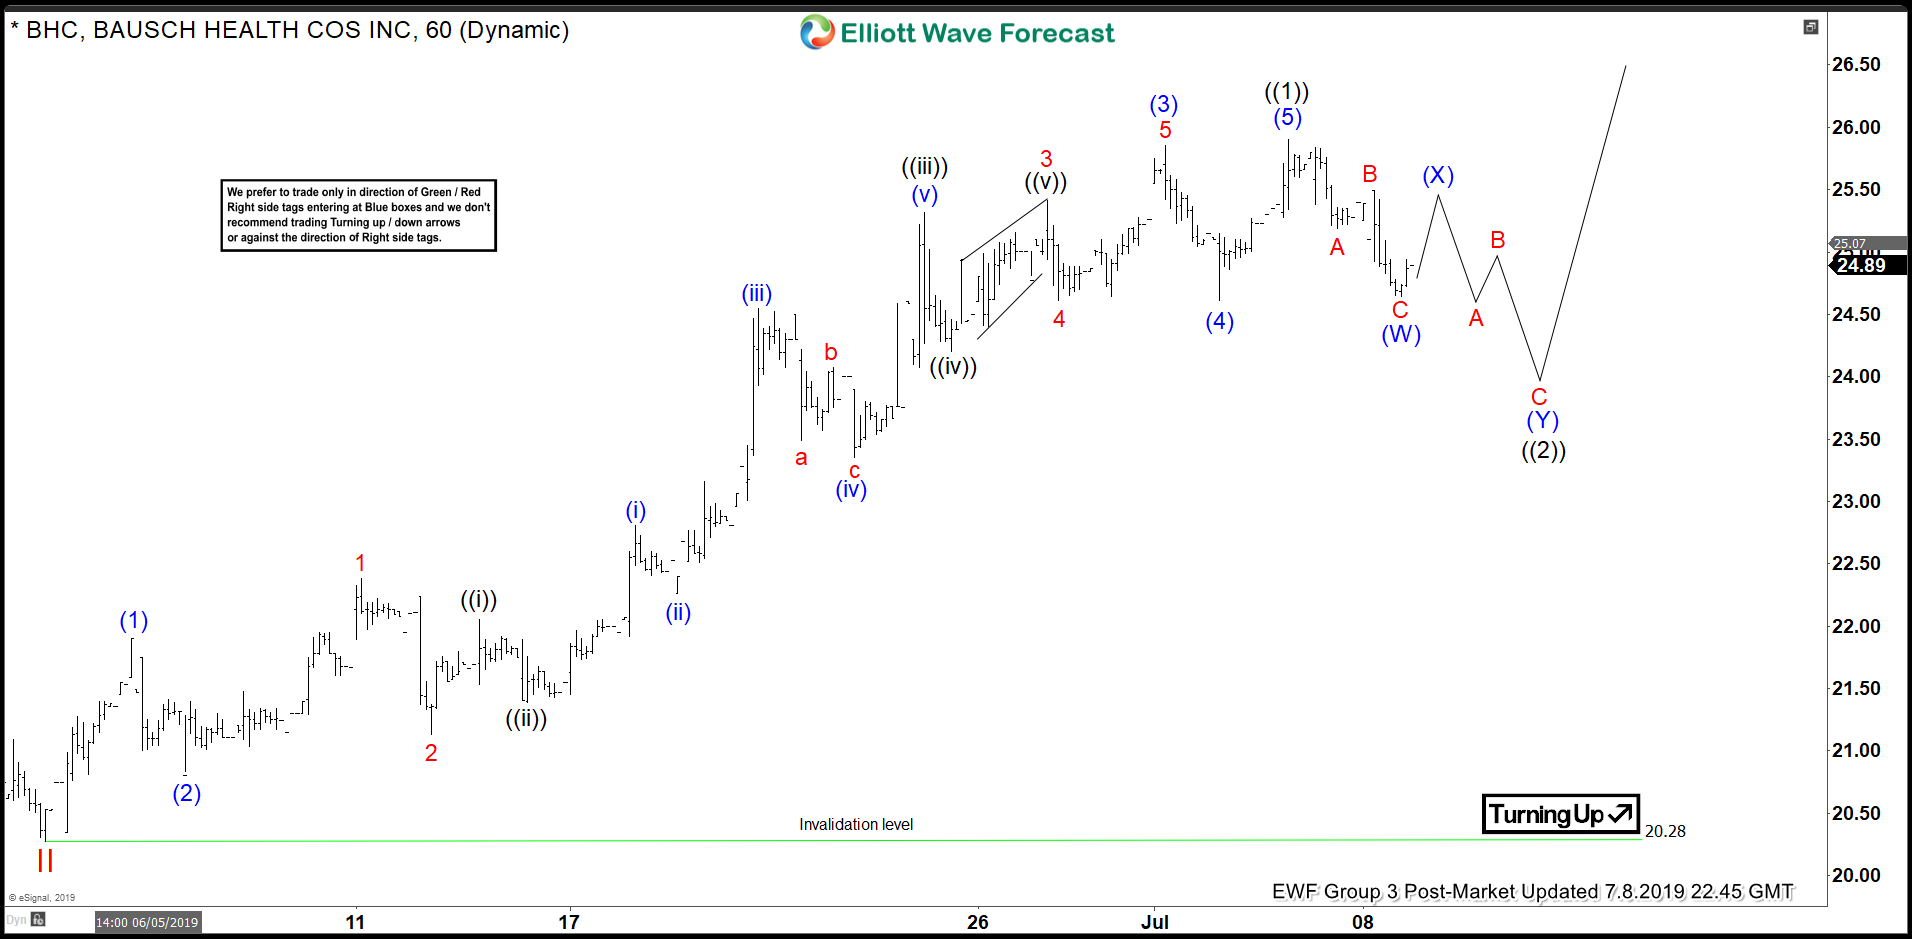 Elliott Wave View: An Impulsive Rally in Bausch Health (BHC)